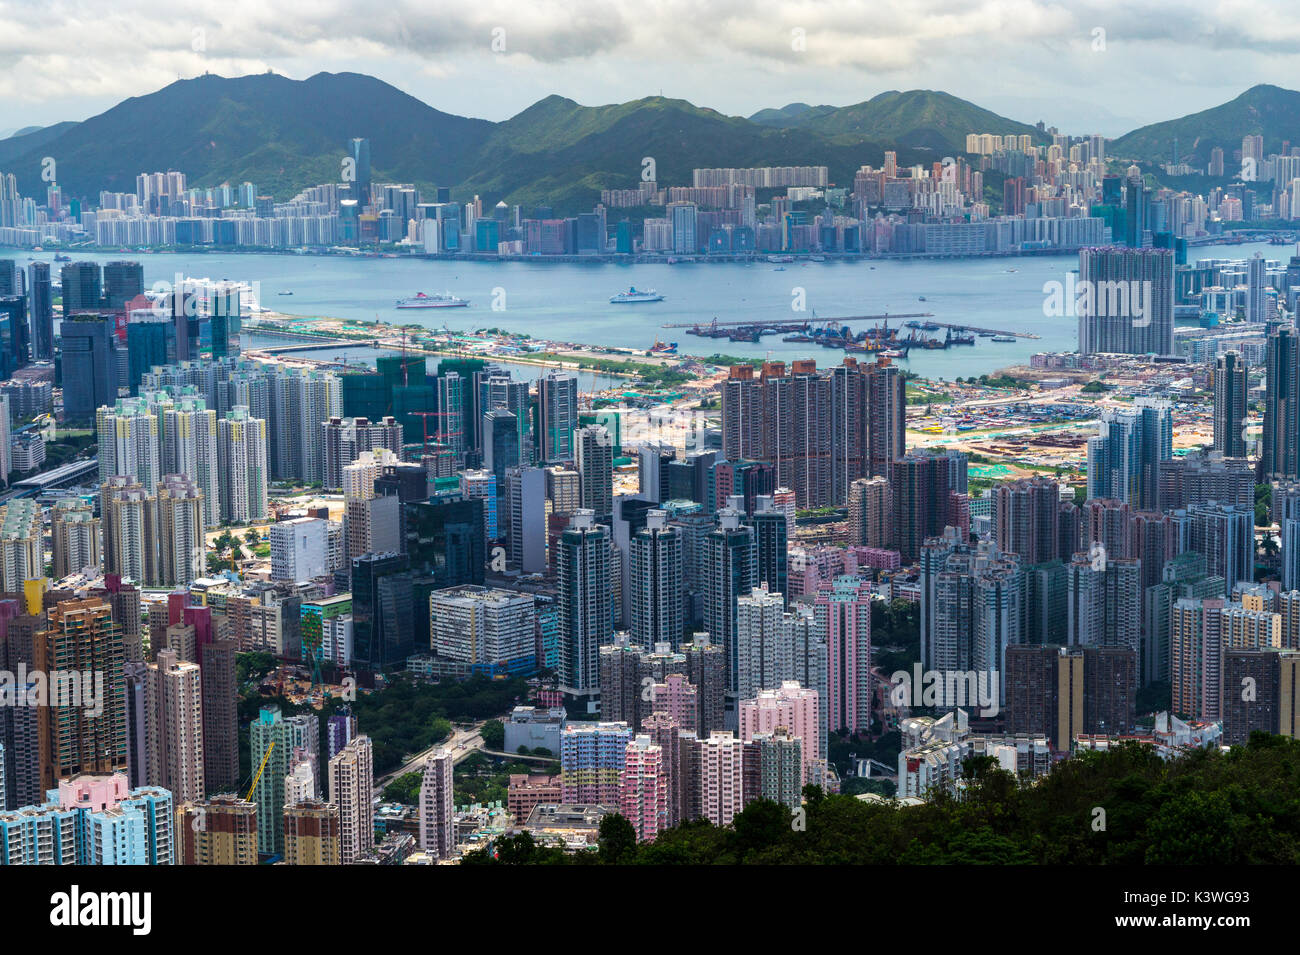 Population density and urbanization, indicated by dense built housing estates in Hong Kong SAR - Stock Image